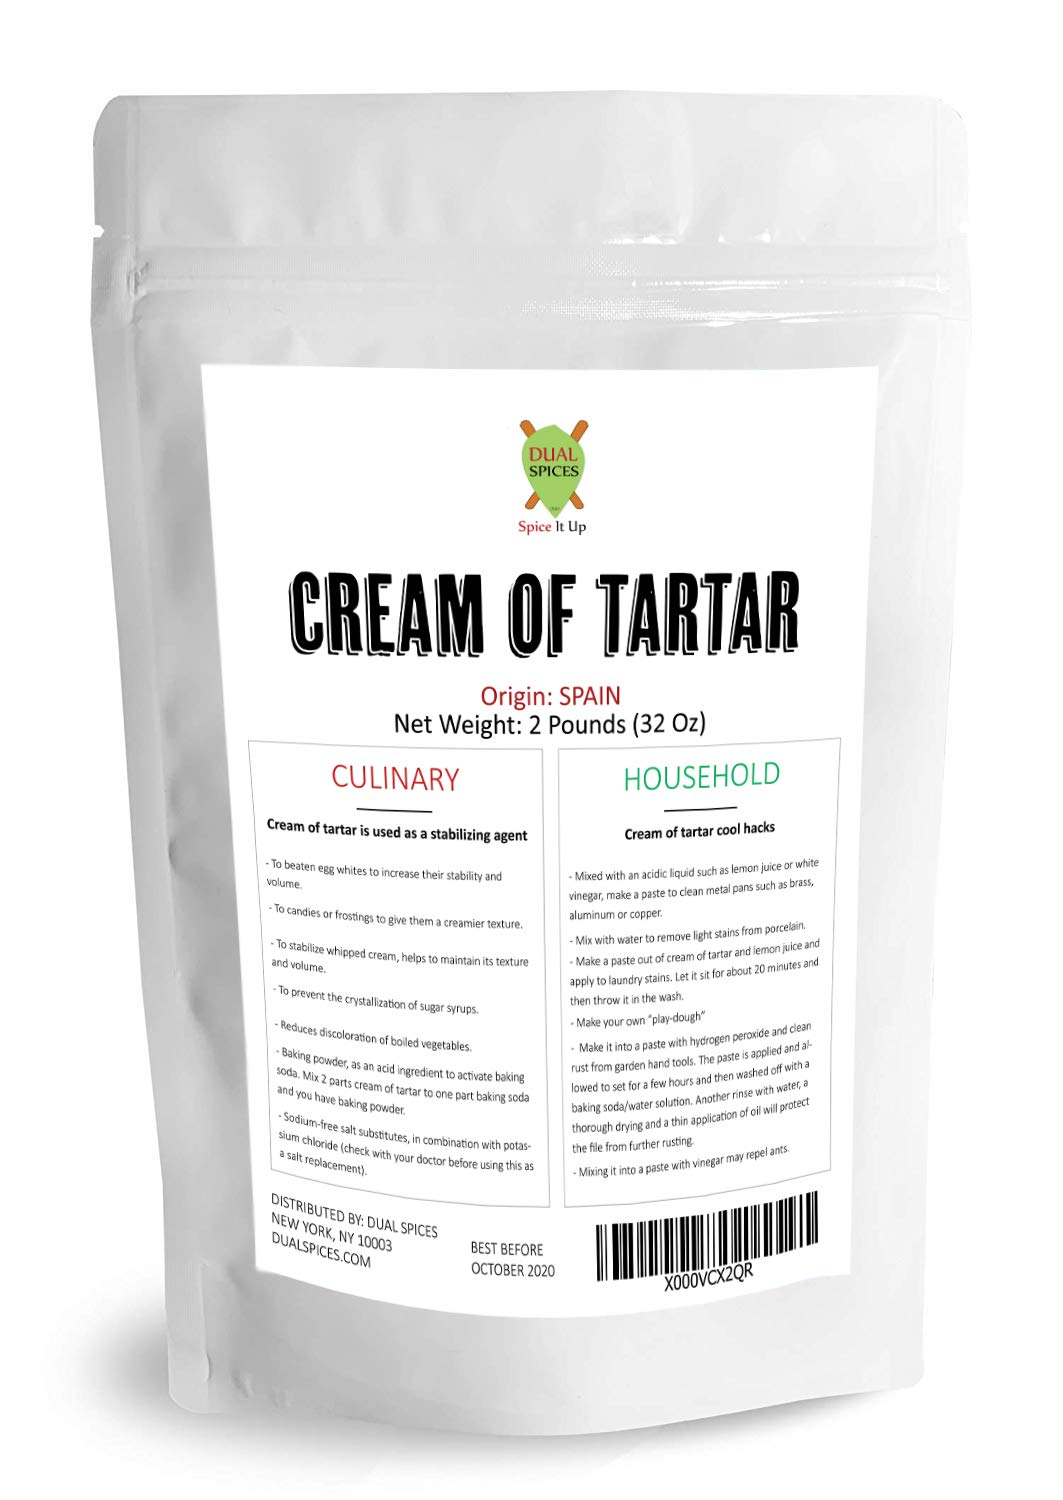 Dualspices CREAM OF TARTAR USP GRADE 2 POUNDS - 32 OZ, Bulk, Gourmet - DIY Cleaning Products, All-Natural